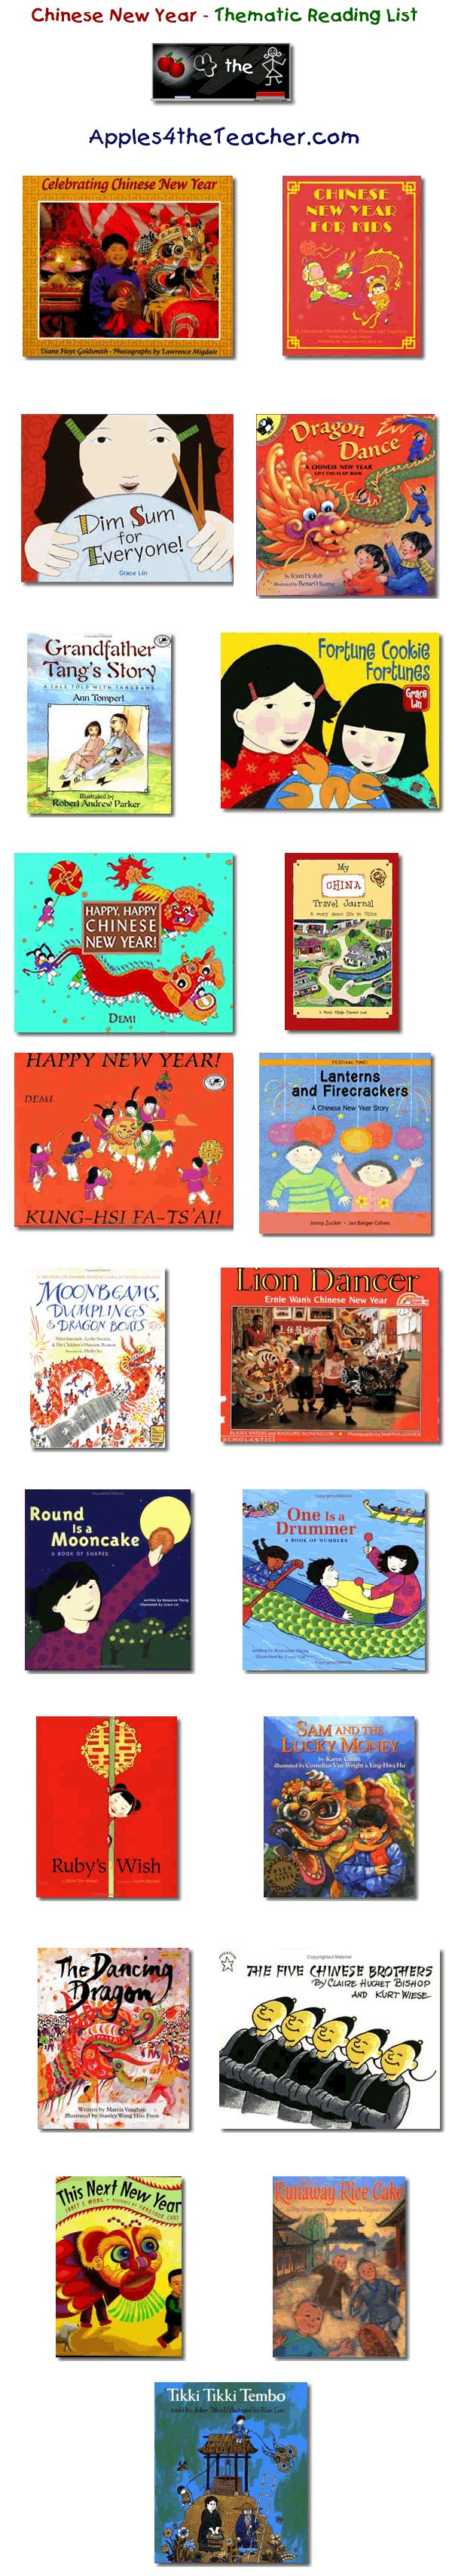 Suggested thematic reading list for Chinese New Year - Chinese New year books for kids.